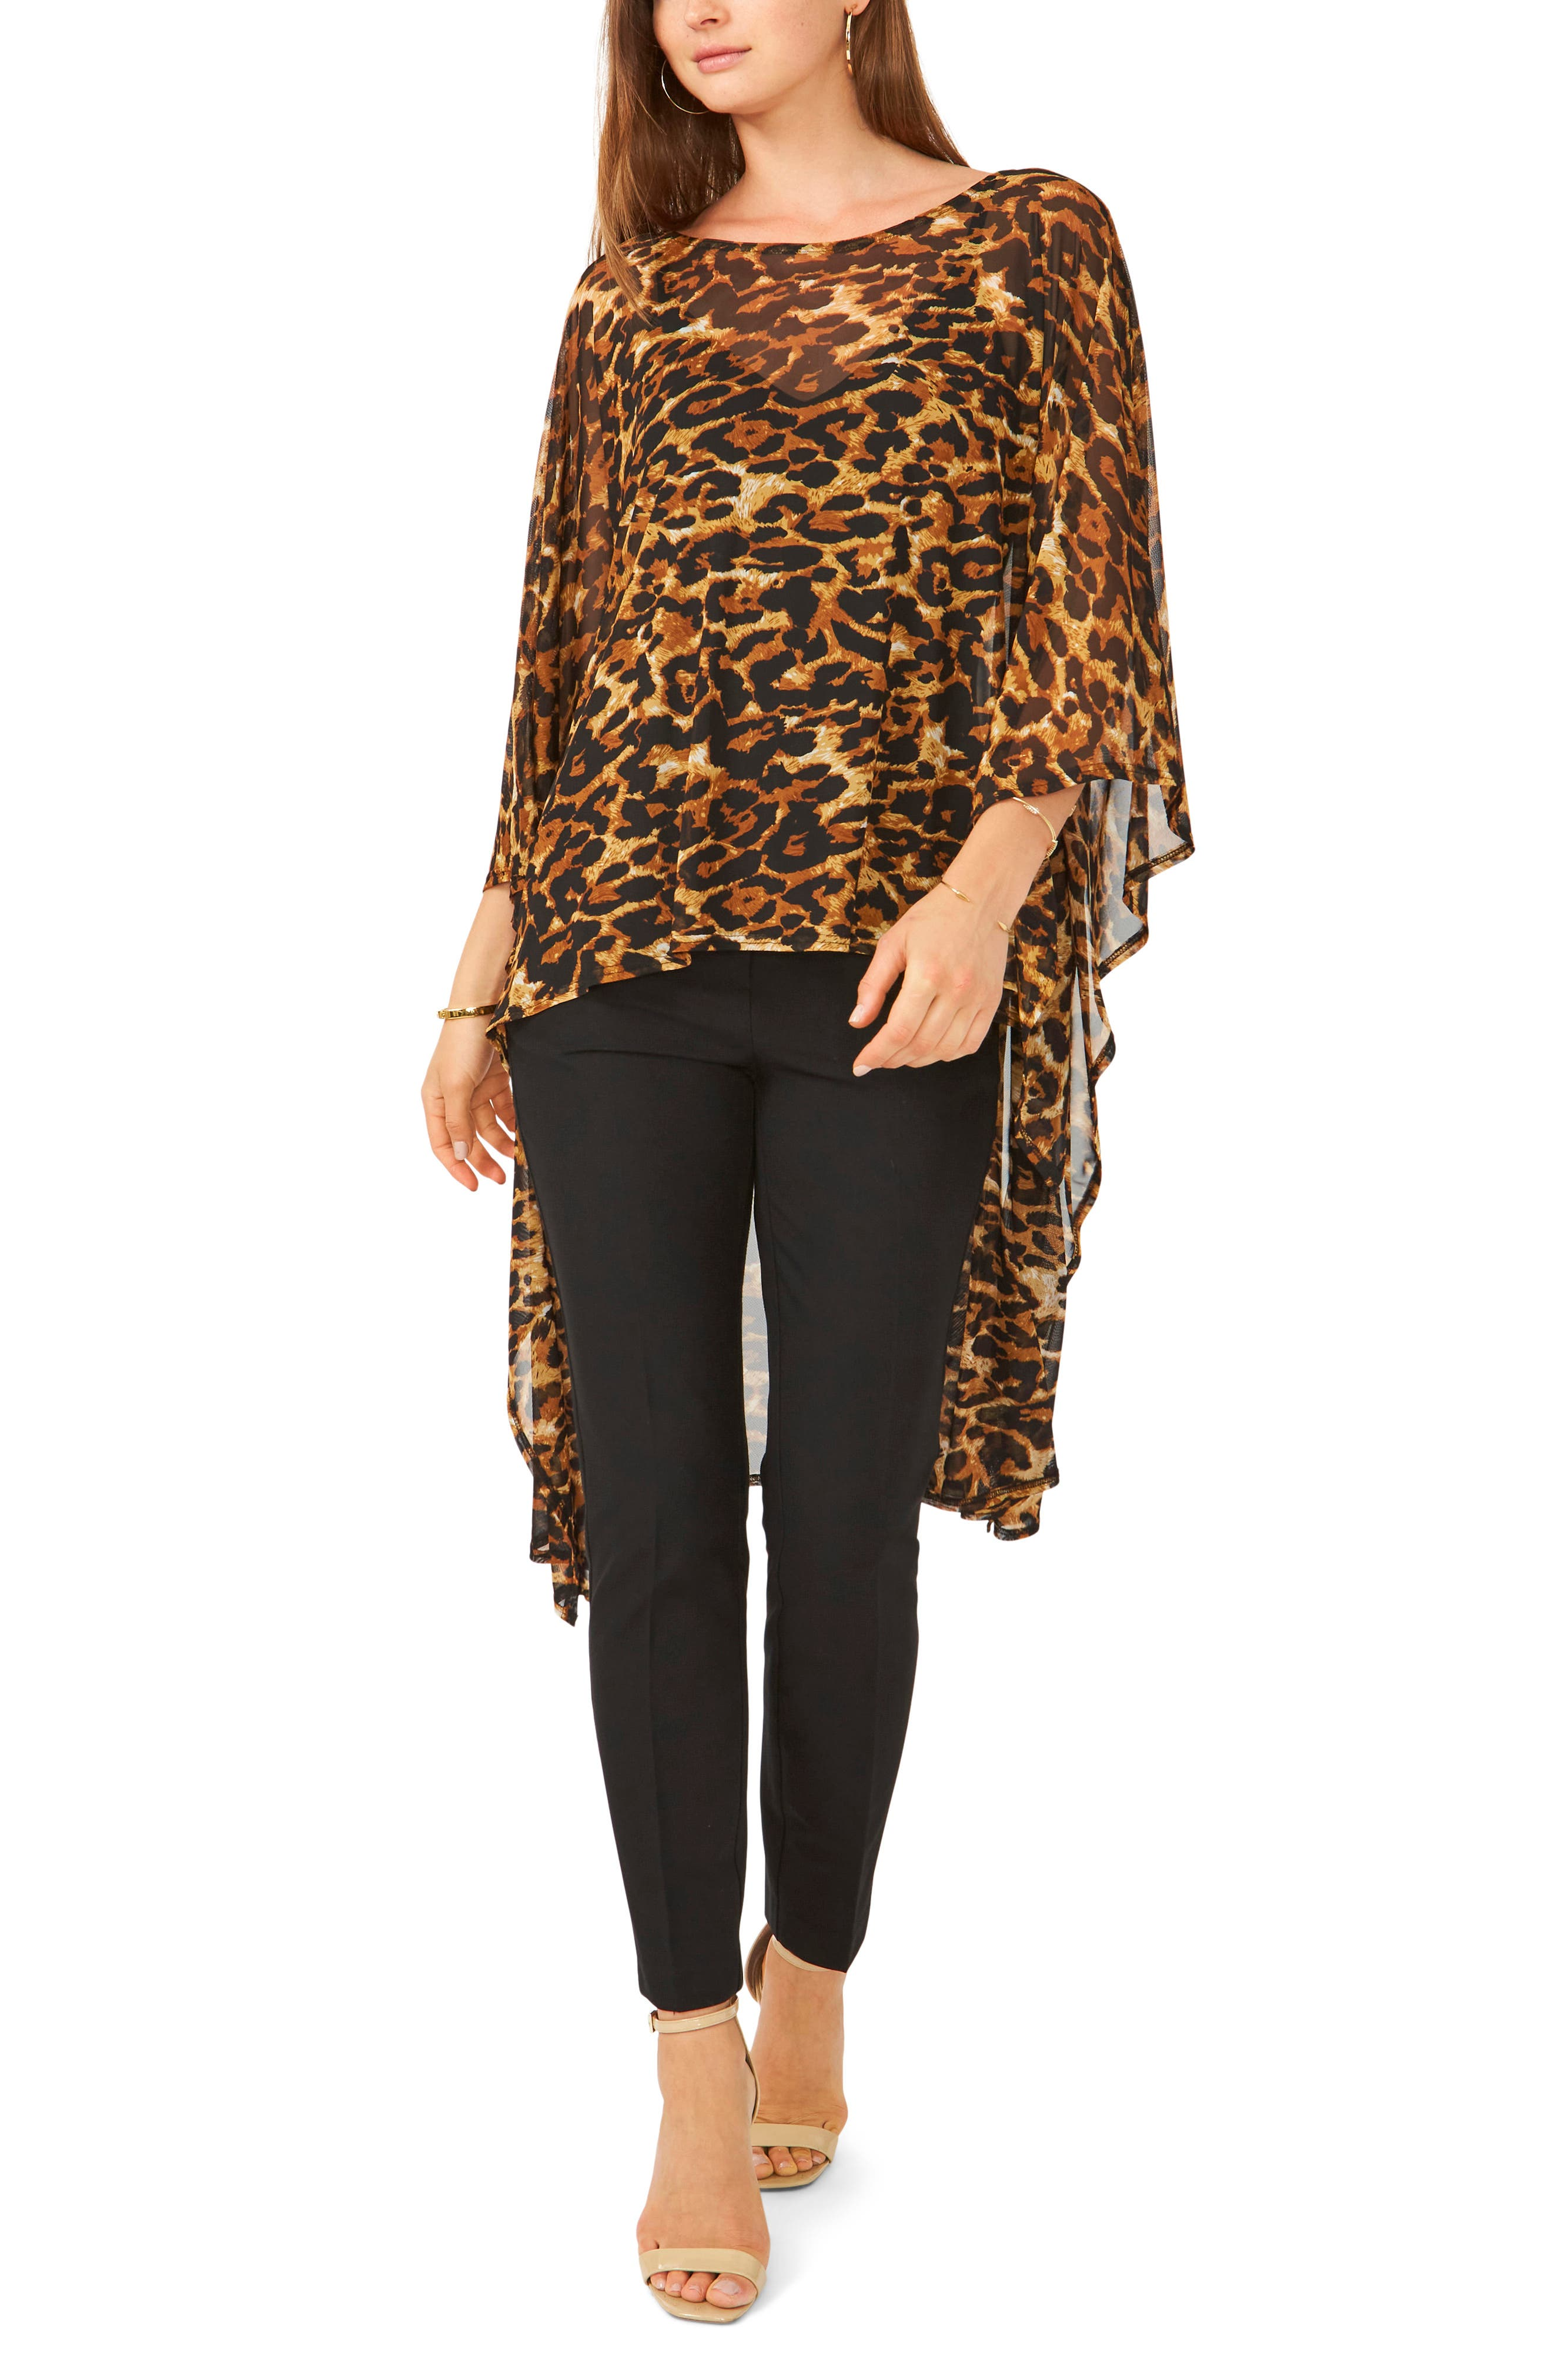 Leopard Print High-Low Tunic Top